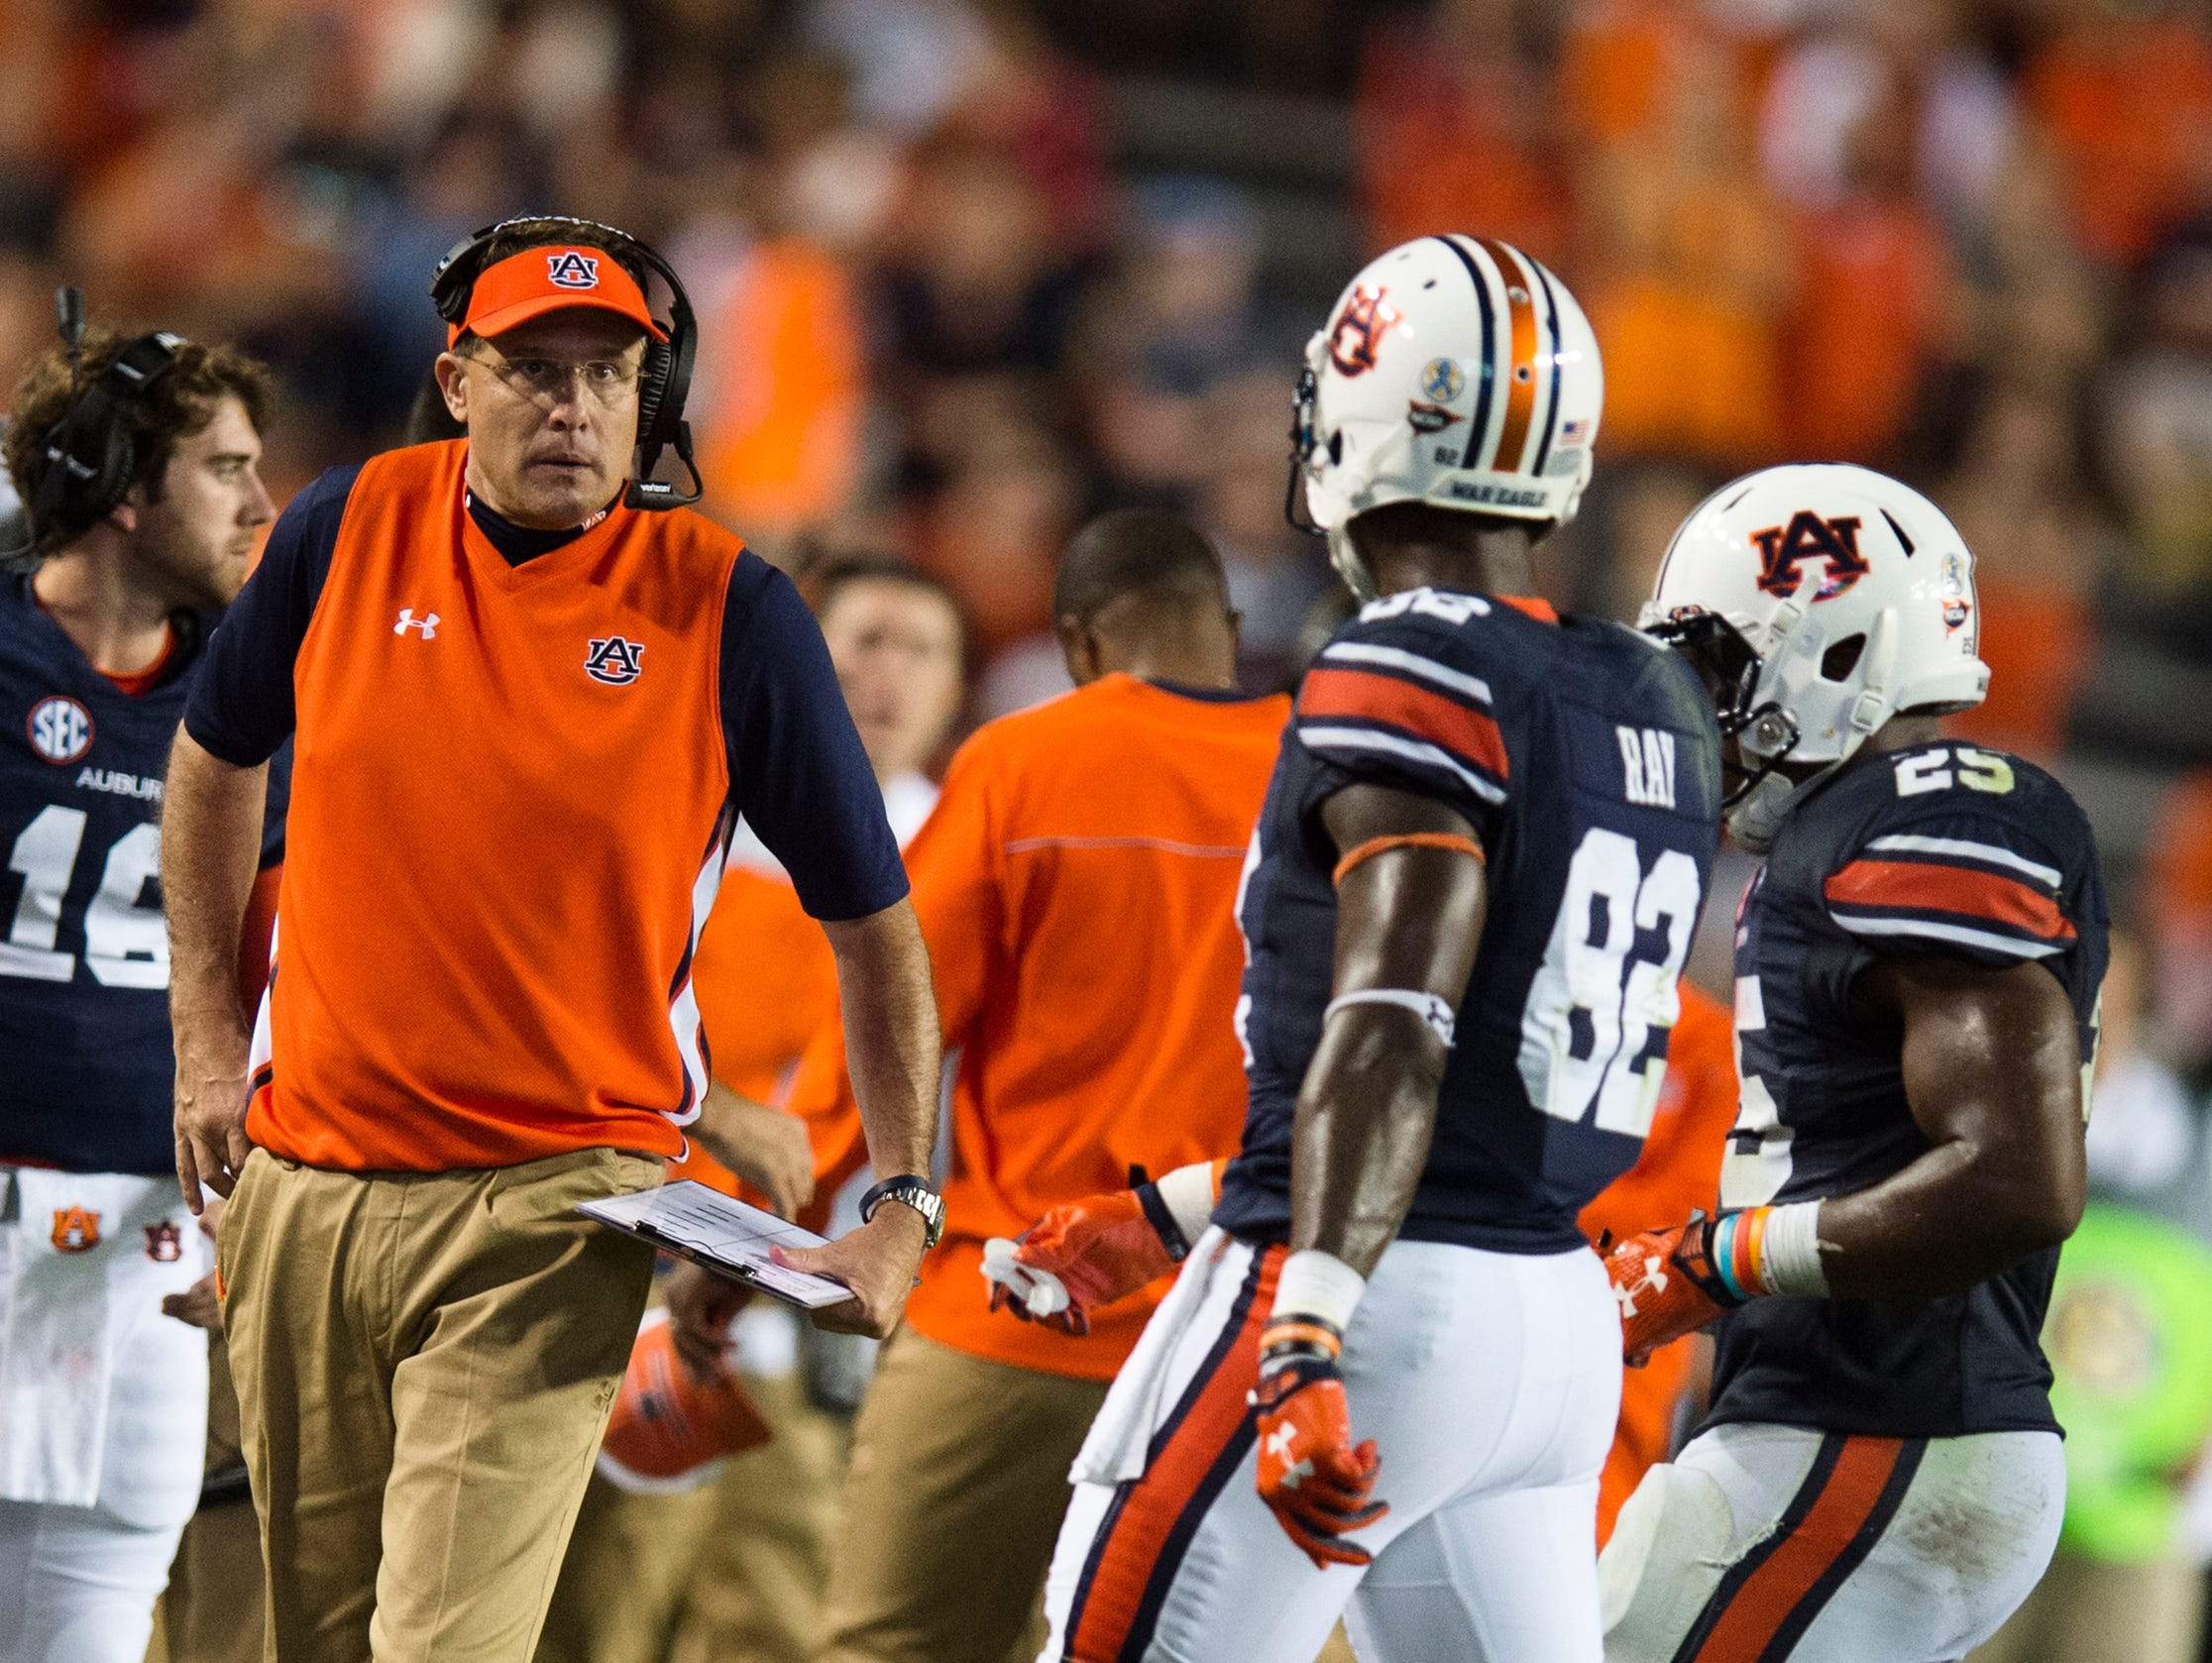 Auburn head coach Gus Malzahn talks to his players during the NCAA football game between Auburn and Mississippi State on Saturday, Sept. 26, 2015, at Jordan-Hare Stadium in Auburn, Ala. Mississippi State Bulldogs defeated Auburn 17-9. Albert Cesare / Advertiser